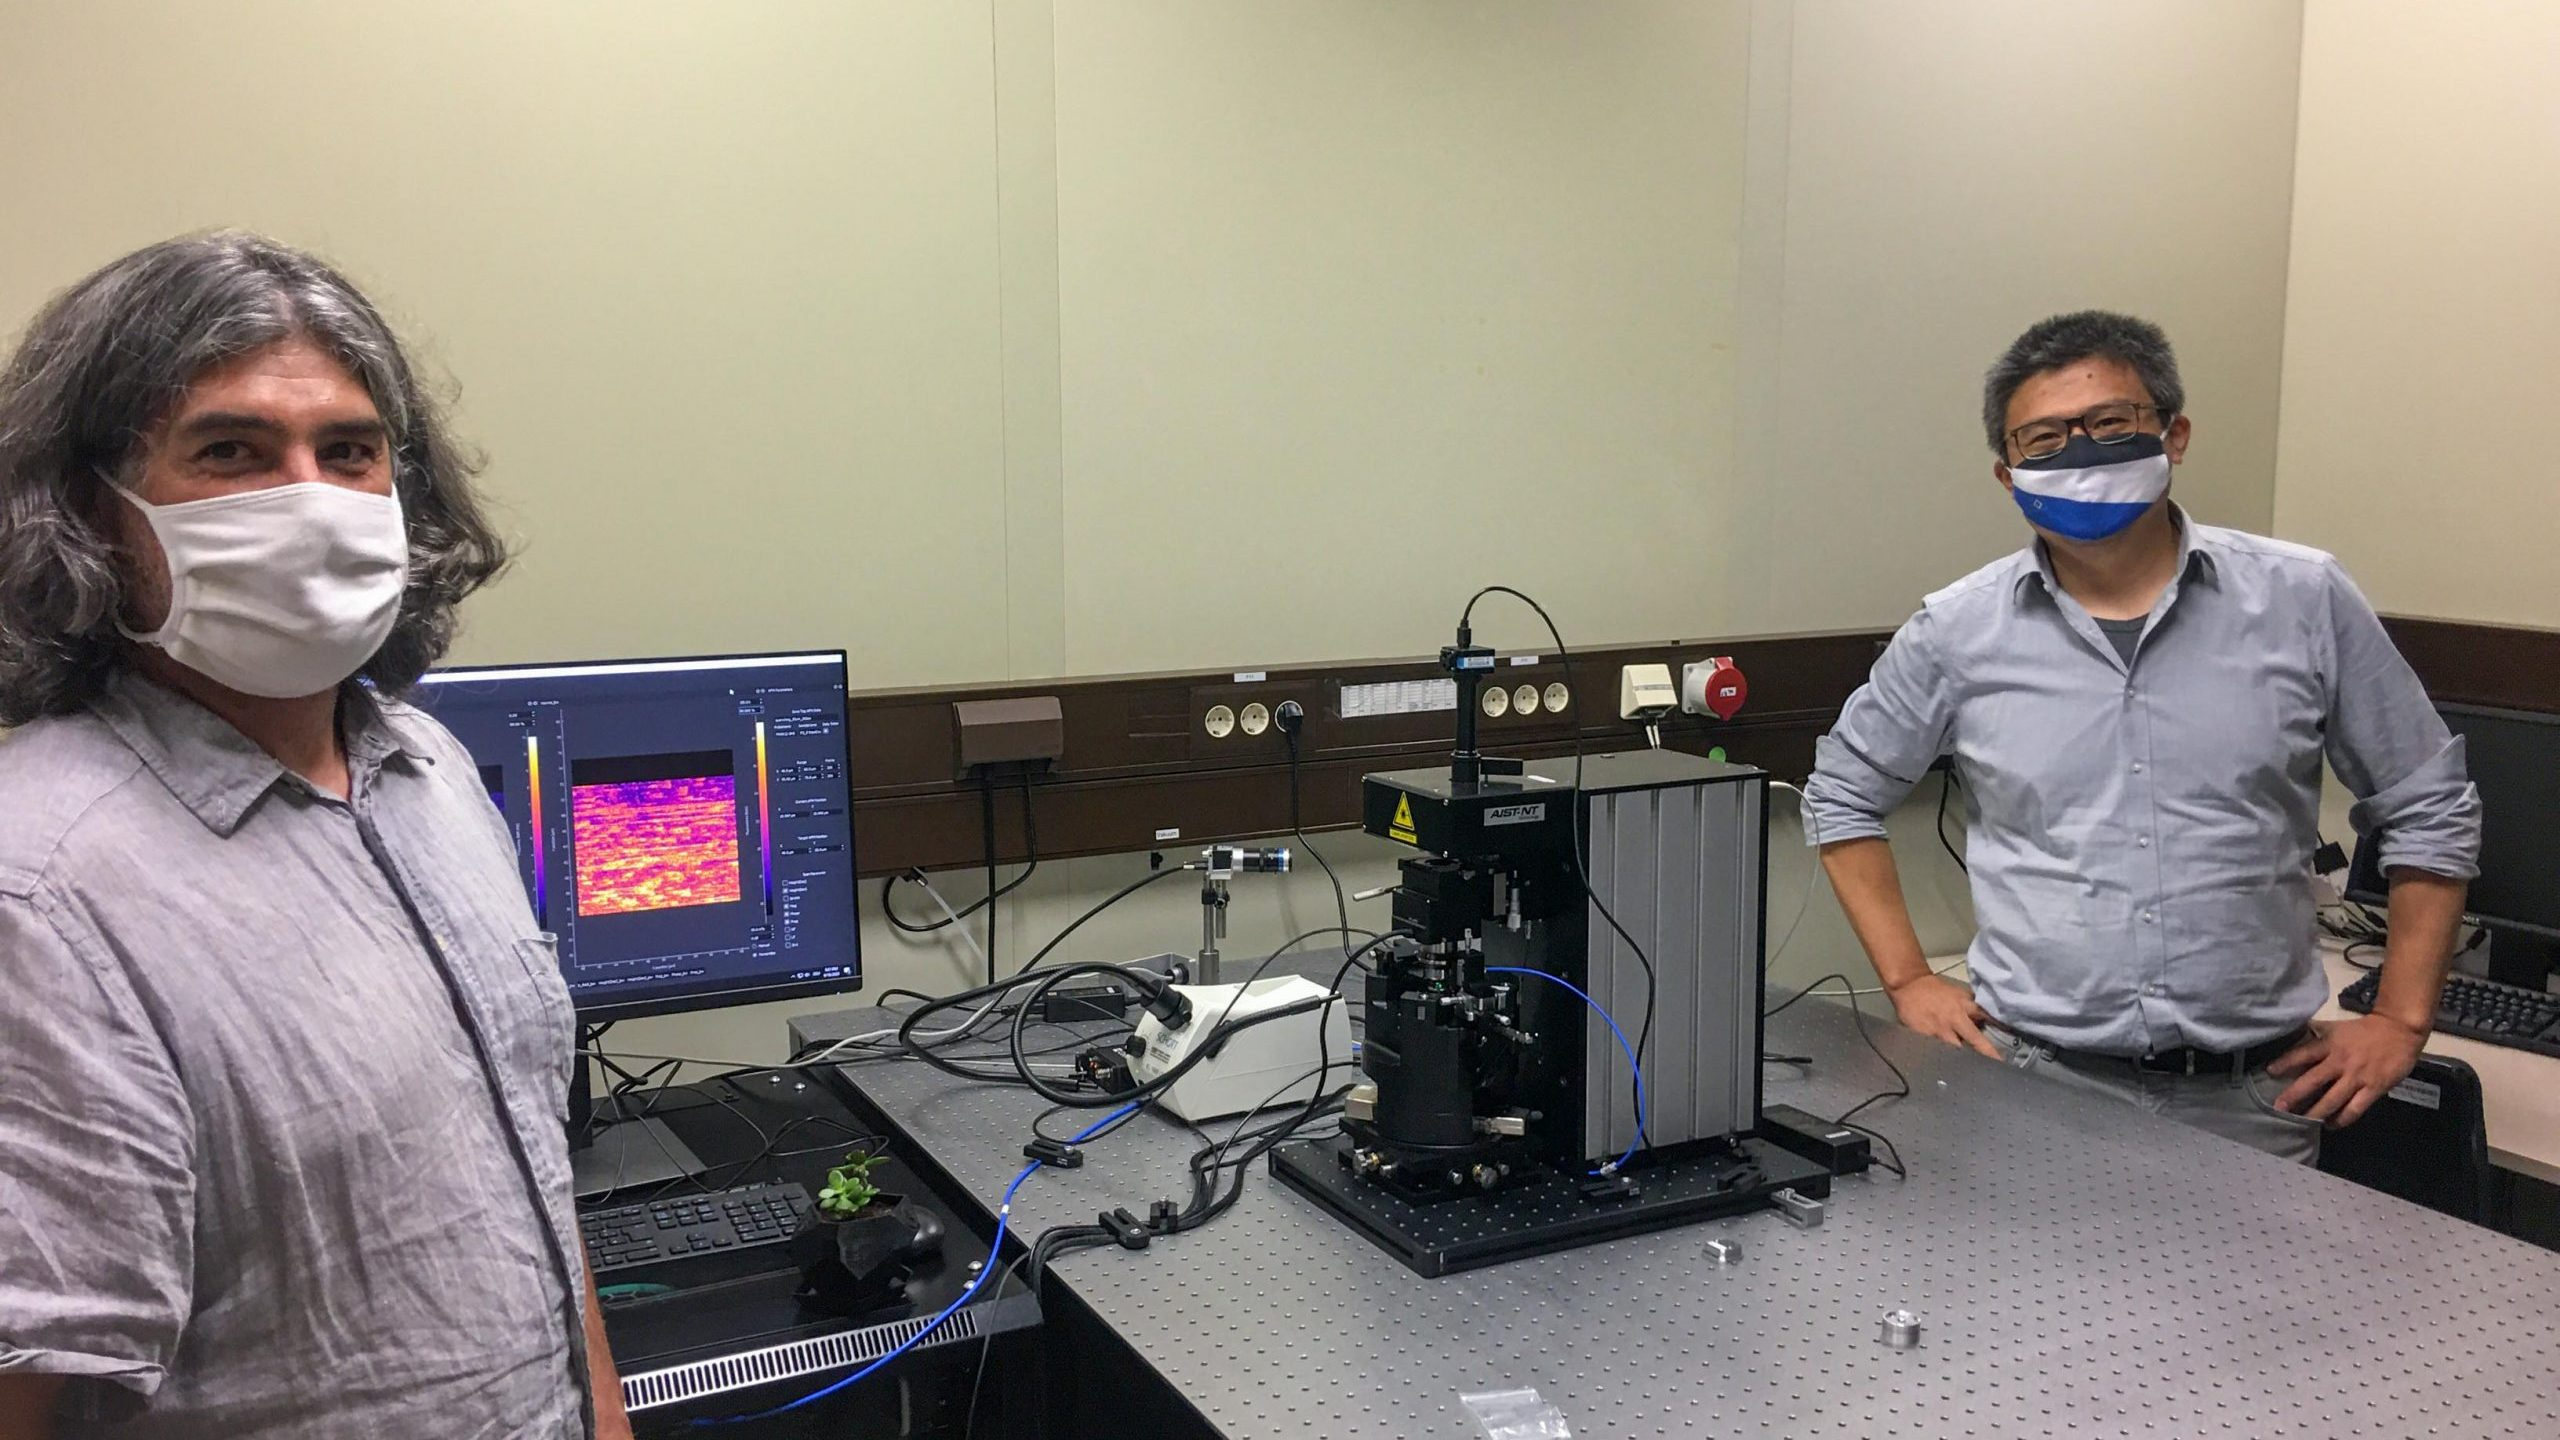 Dr. Hai Zhong with Dr. Xavier Vidal in the lab installing the new ProteusQ